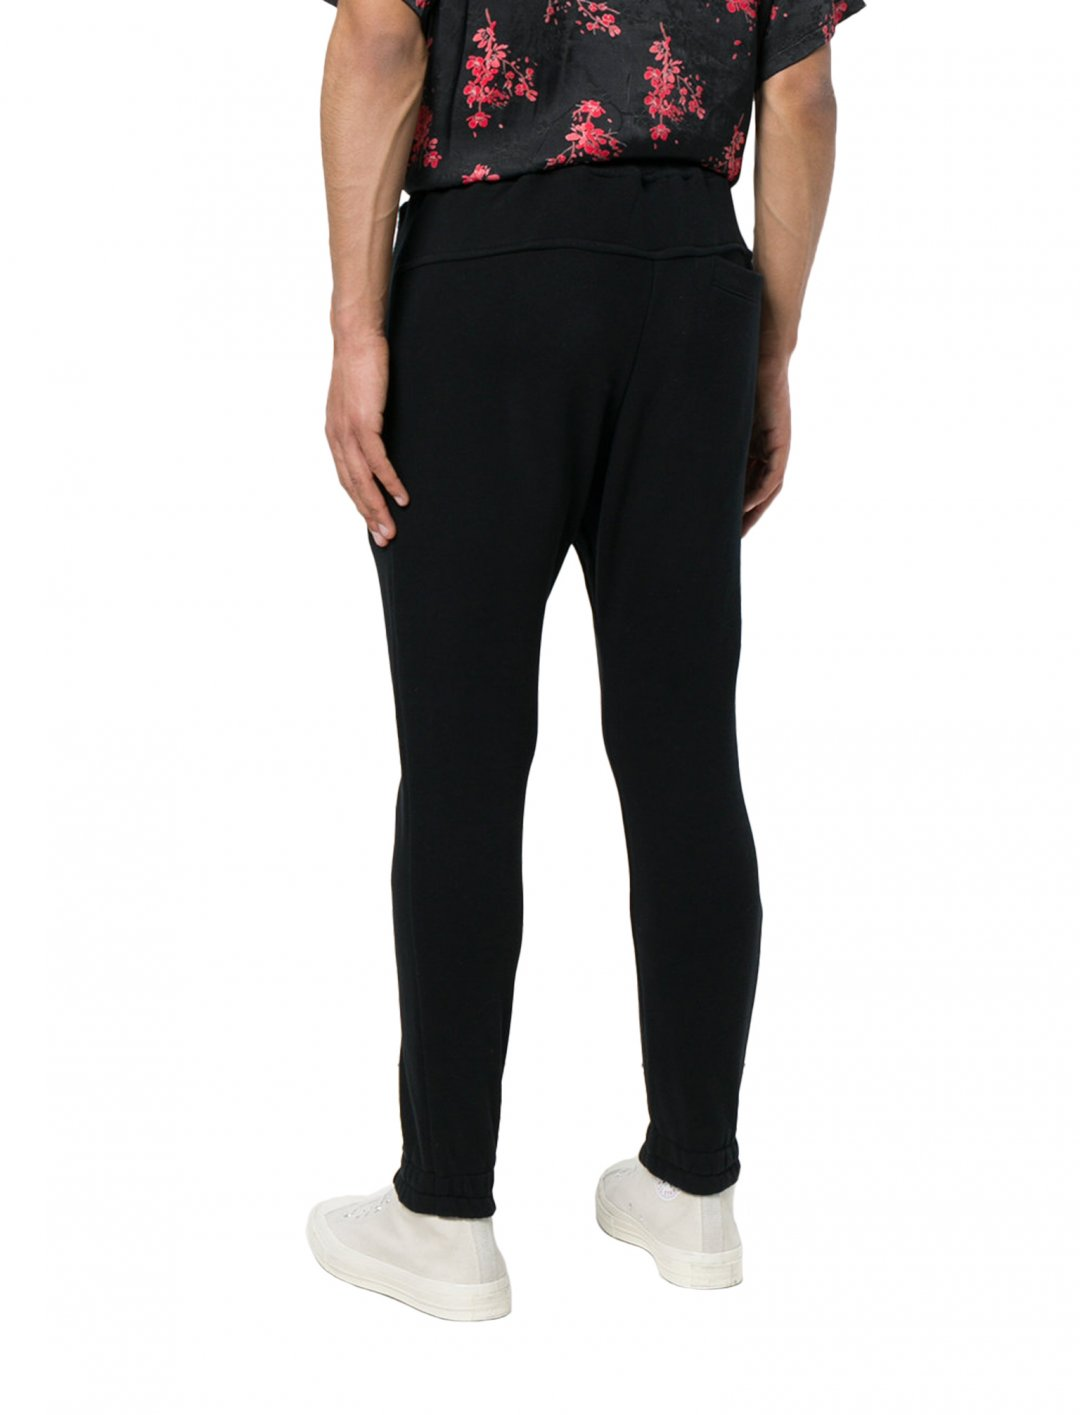 "Not3s' Black Track Pants {""id"":5,""product_section_id"":1,""name"":""Clothing"",""order"":5} Represent"